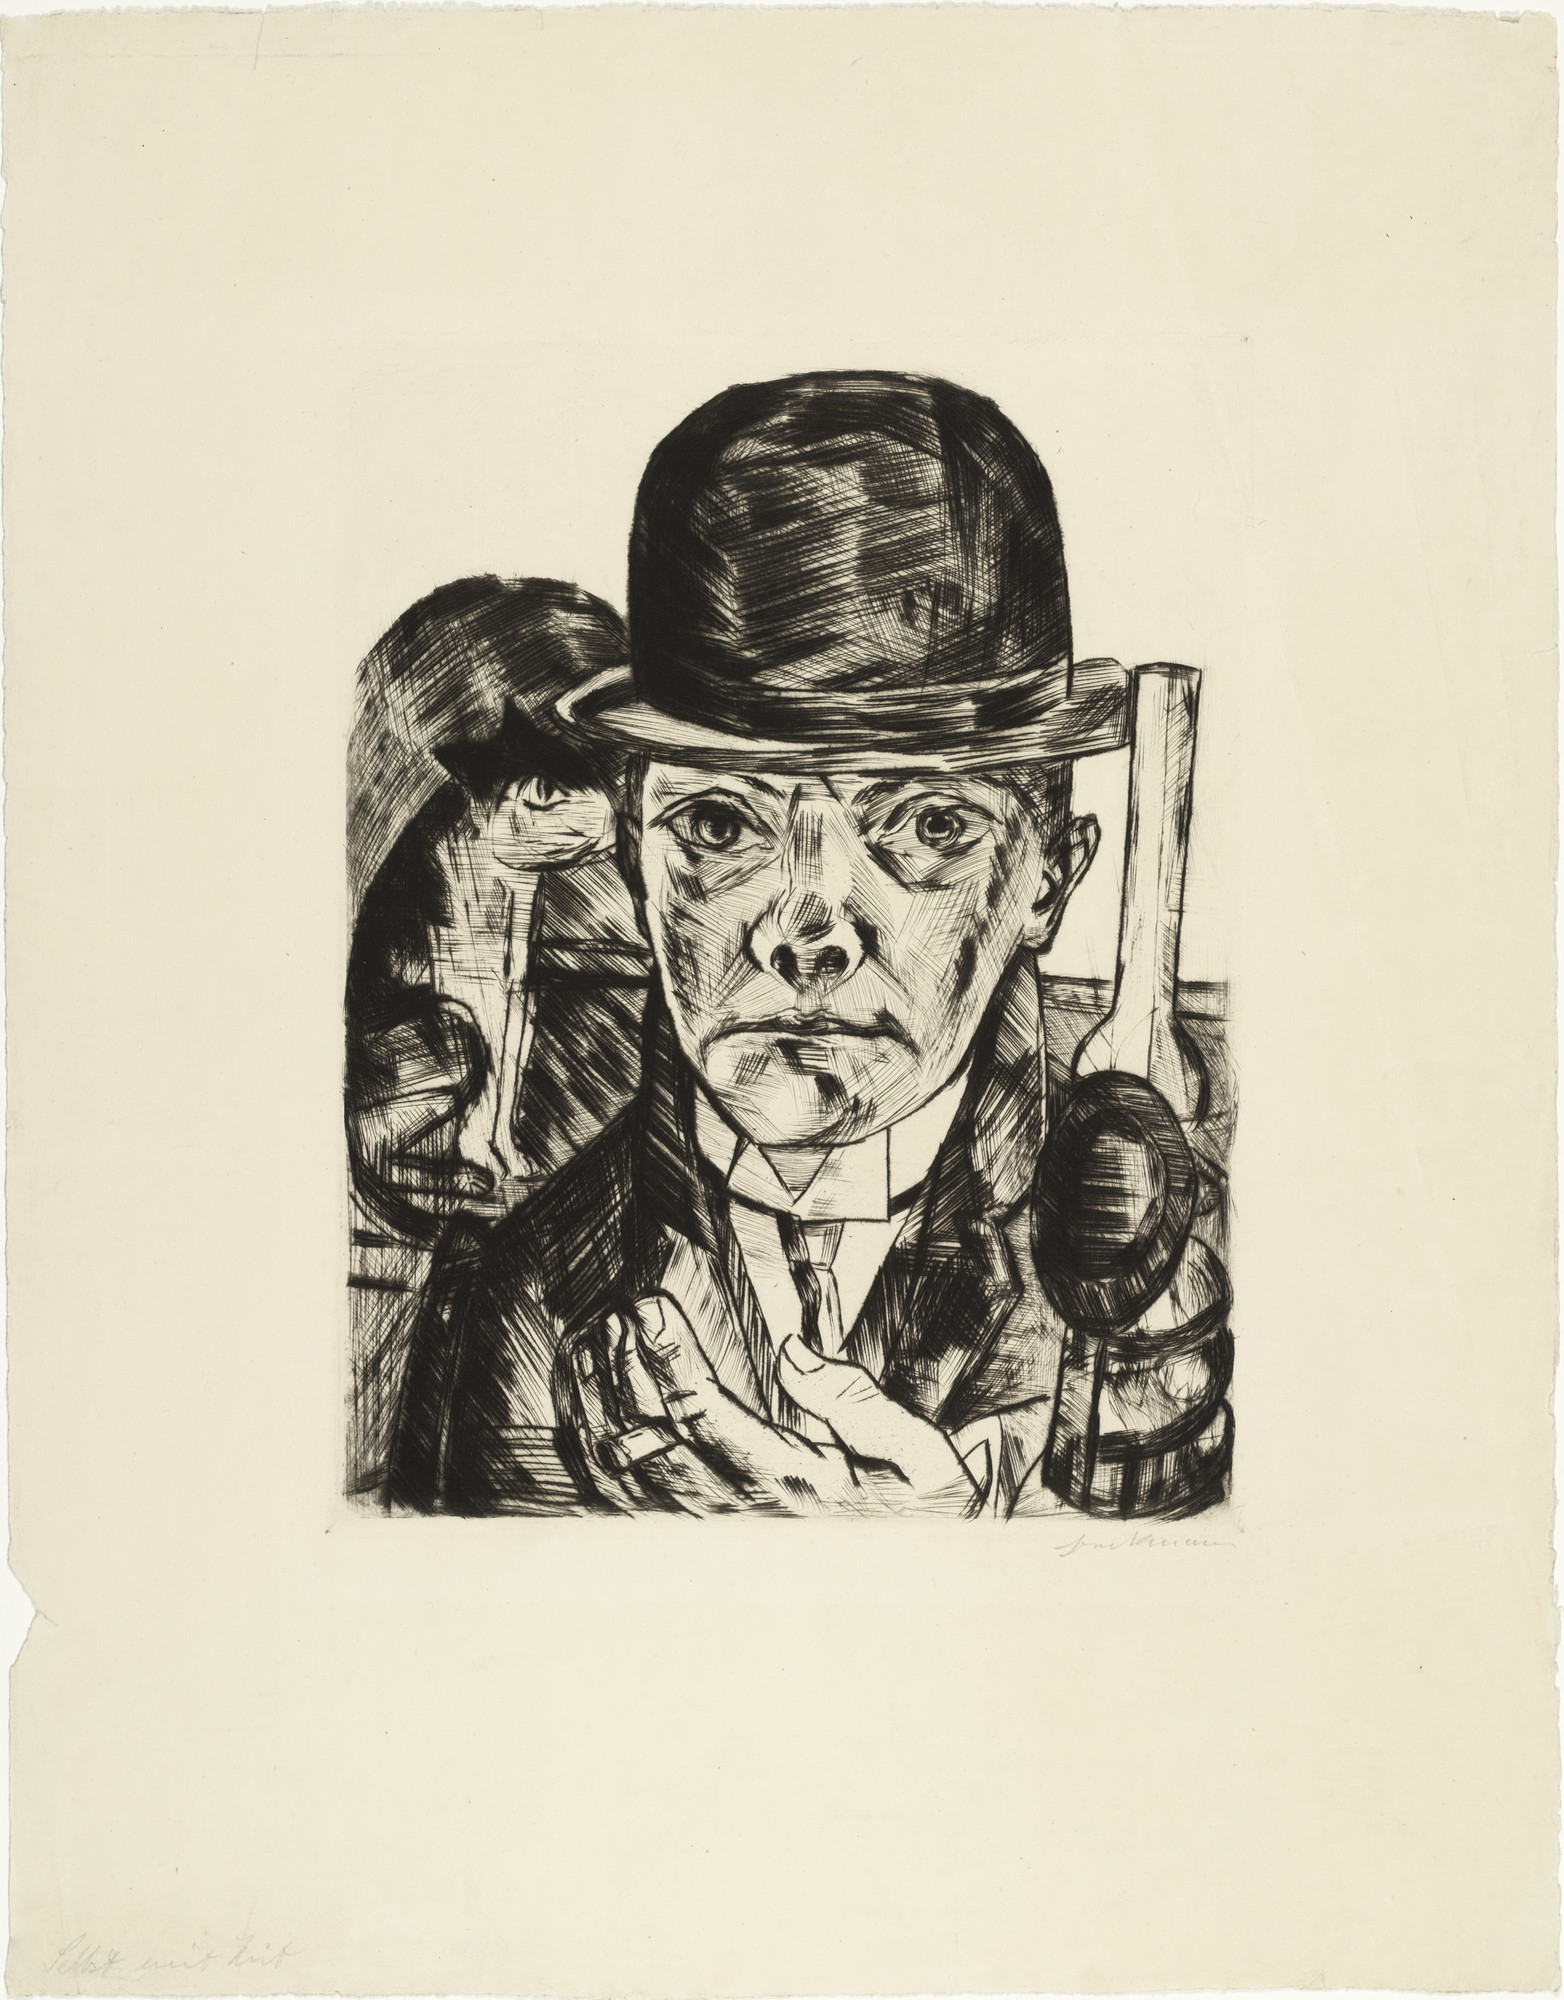 Max Beckmann. Self-Portrait in Bowler Hat (Selbstbildnis mit steifem Hut). (1921, published not before 1922)